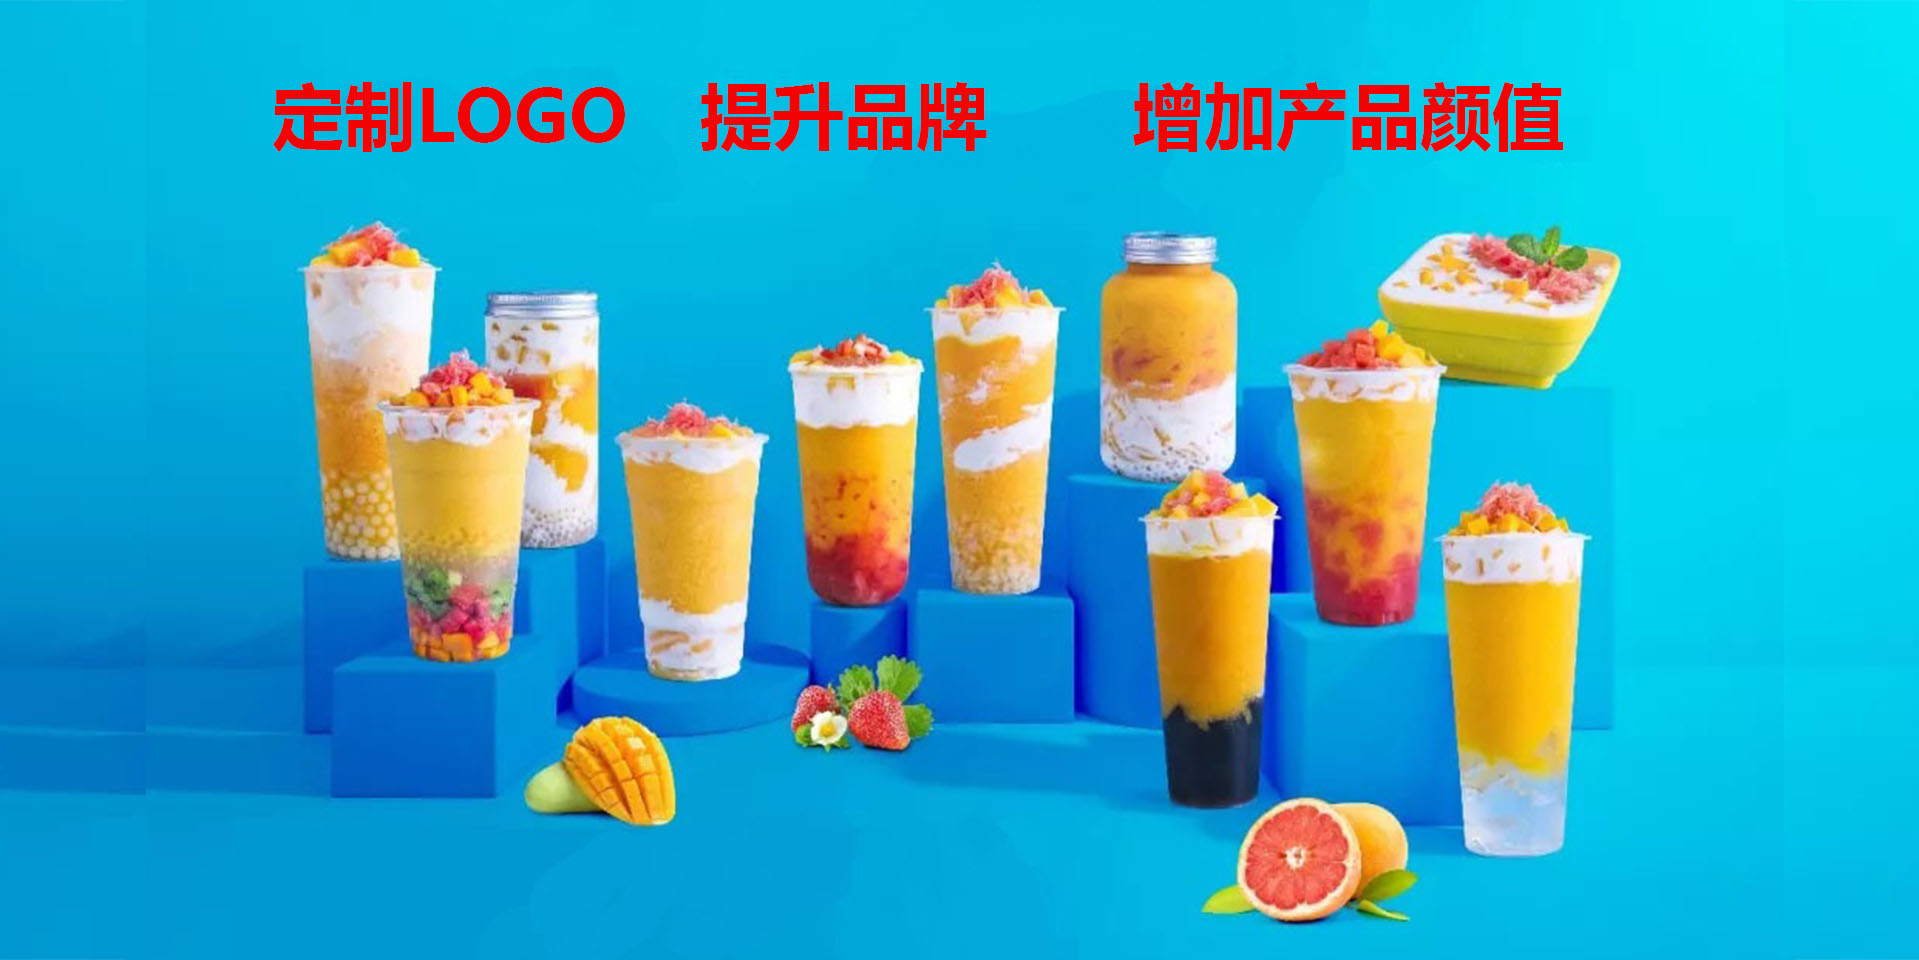 Guangzhou jingsui plastic products Co., Ltd Main Image